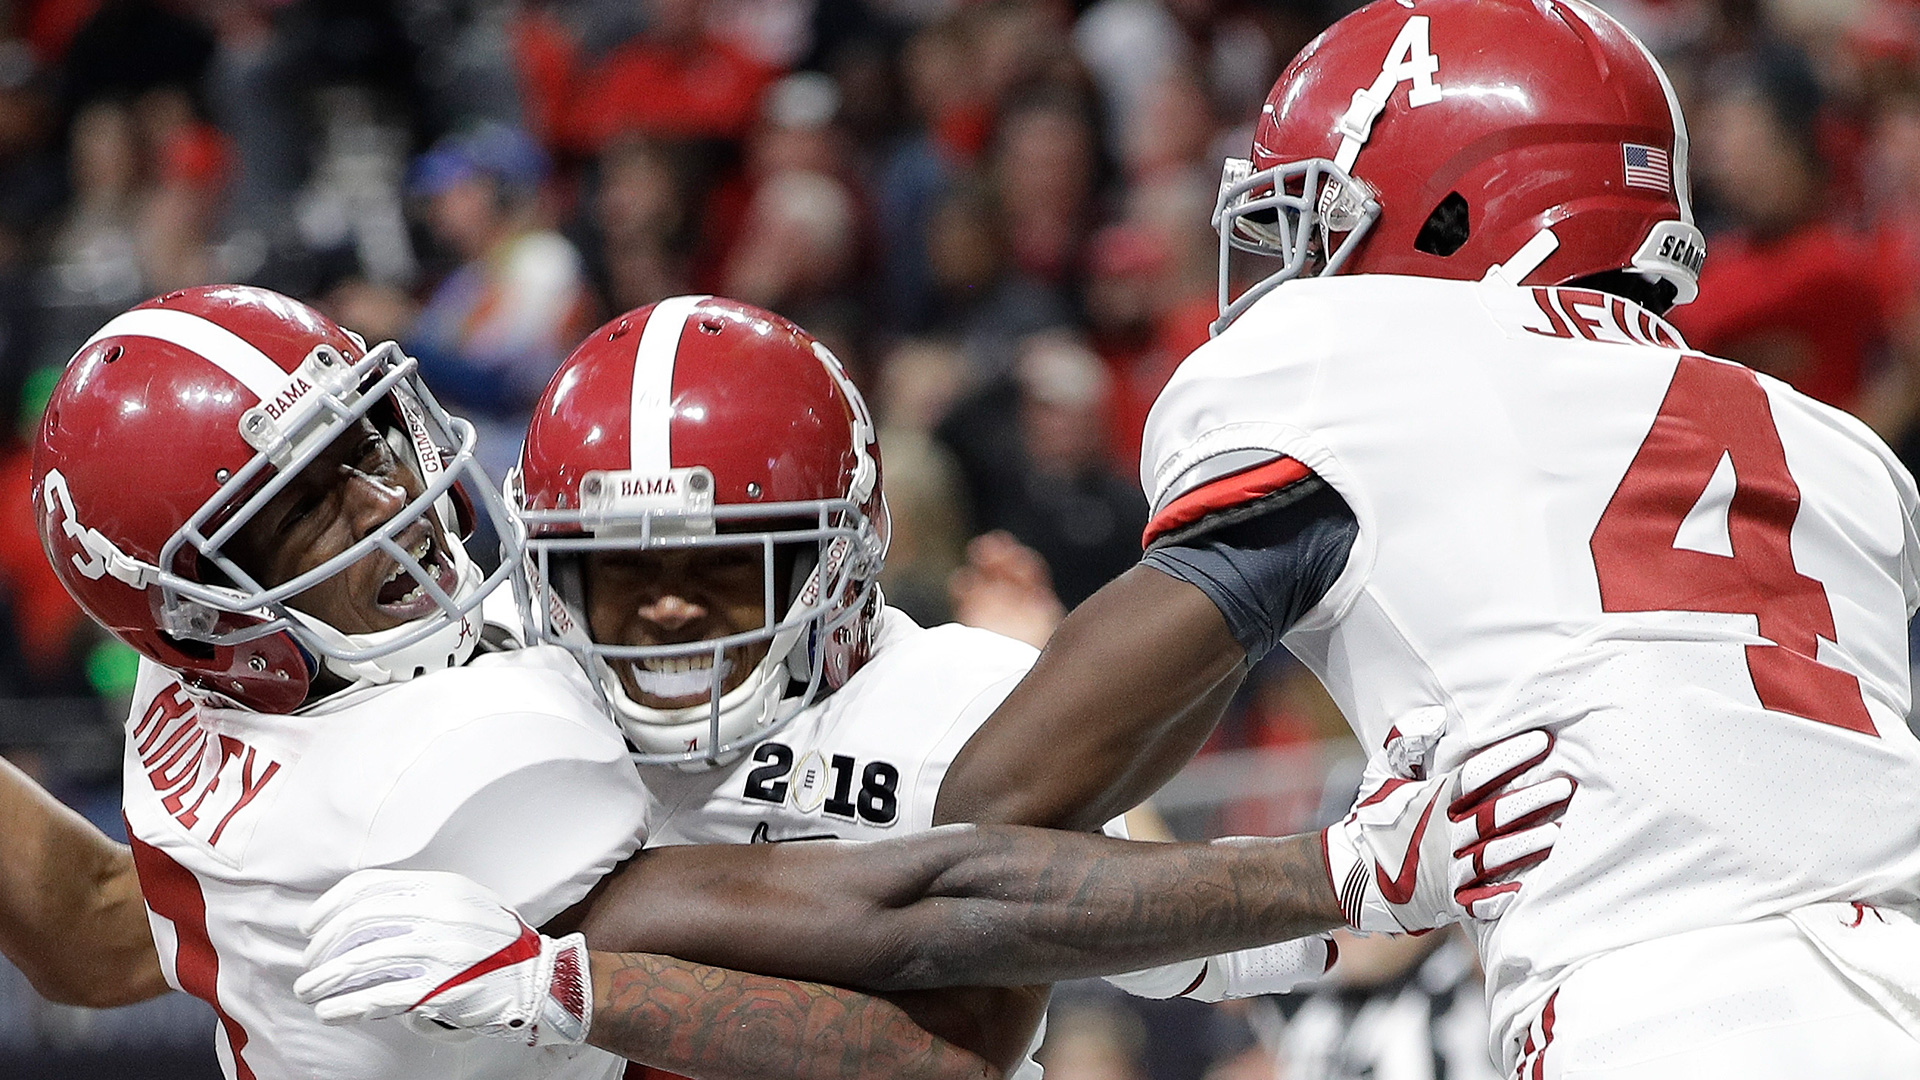 Alabama wide receiver DeVonta Smith (6) celebrates his touchdown during overtime of the NCAA college football playoff championship game against Georgia, Monday, Jan. 8, 2018, in Atlanta. Alabama won 26-23 in overtime.(AP Photo/David J. Phillip)